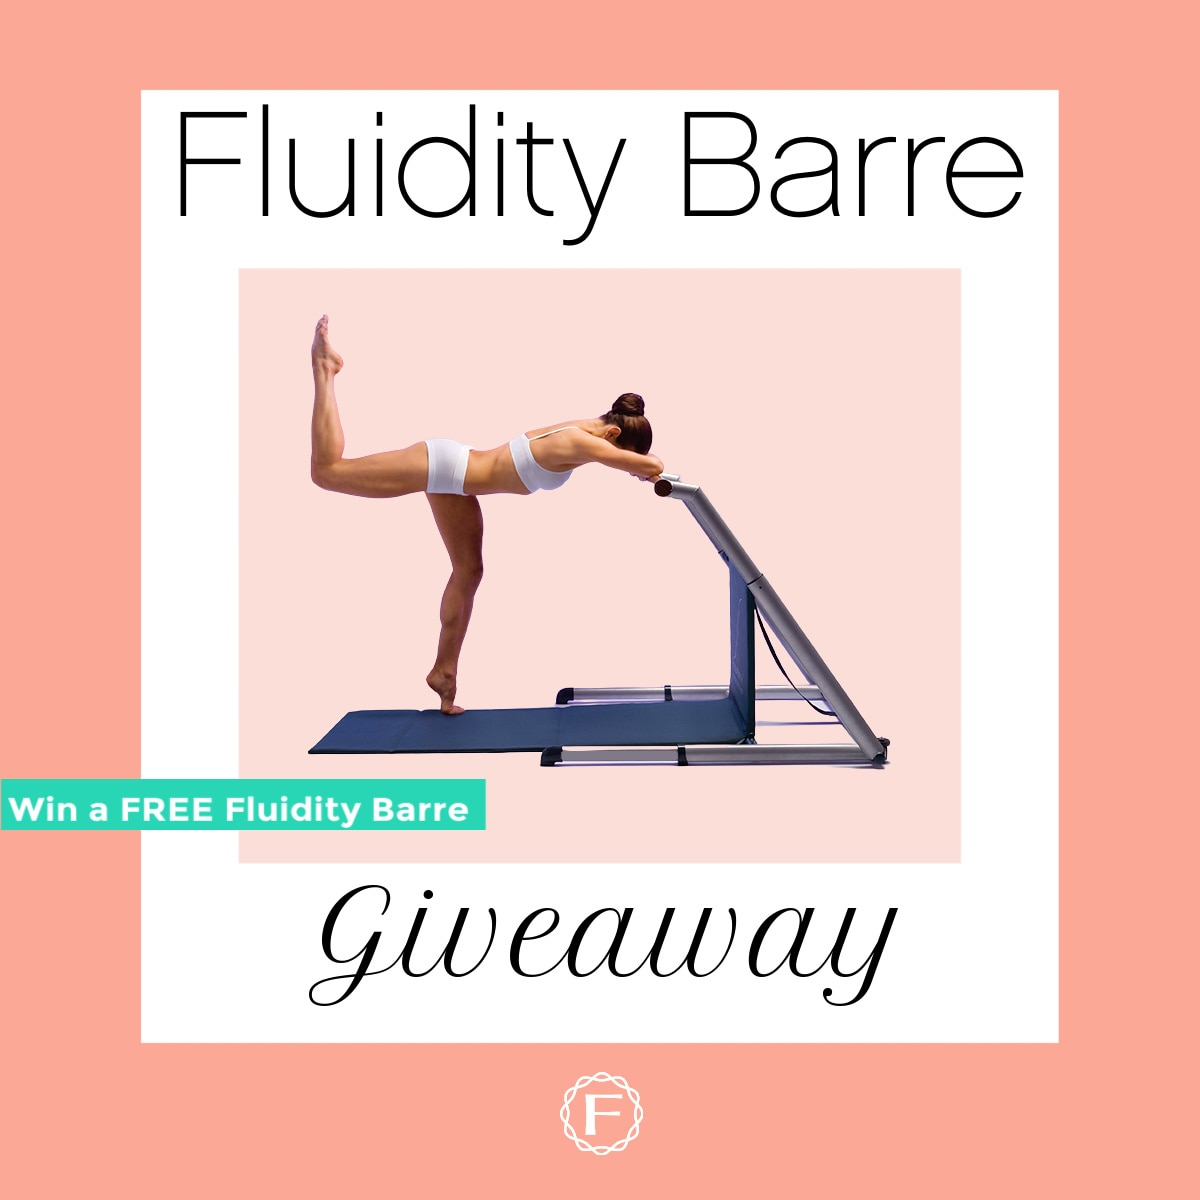 Enter to win the Ultimate Fluidity Workout Barre System. The package comes with a Mat, Beginner, Intermediate & Advanced DVDs, Ball, Pump, Bands and more. Reinvent yourself with just two 30-minute workouts a week. Giveaway Image